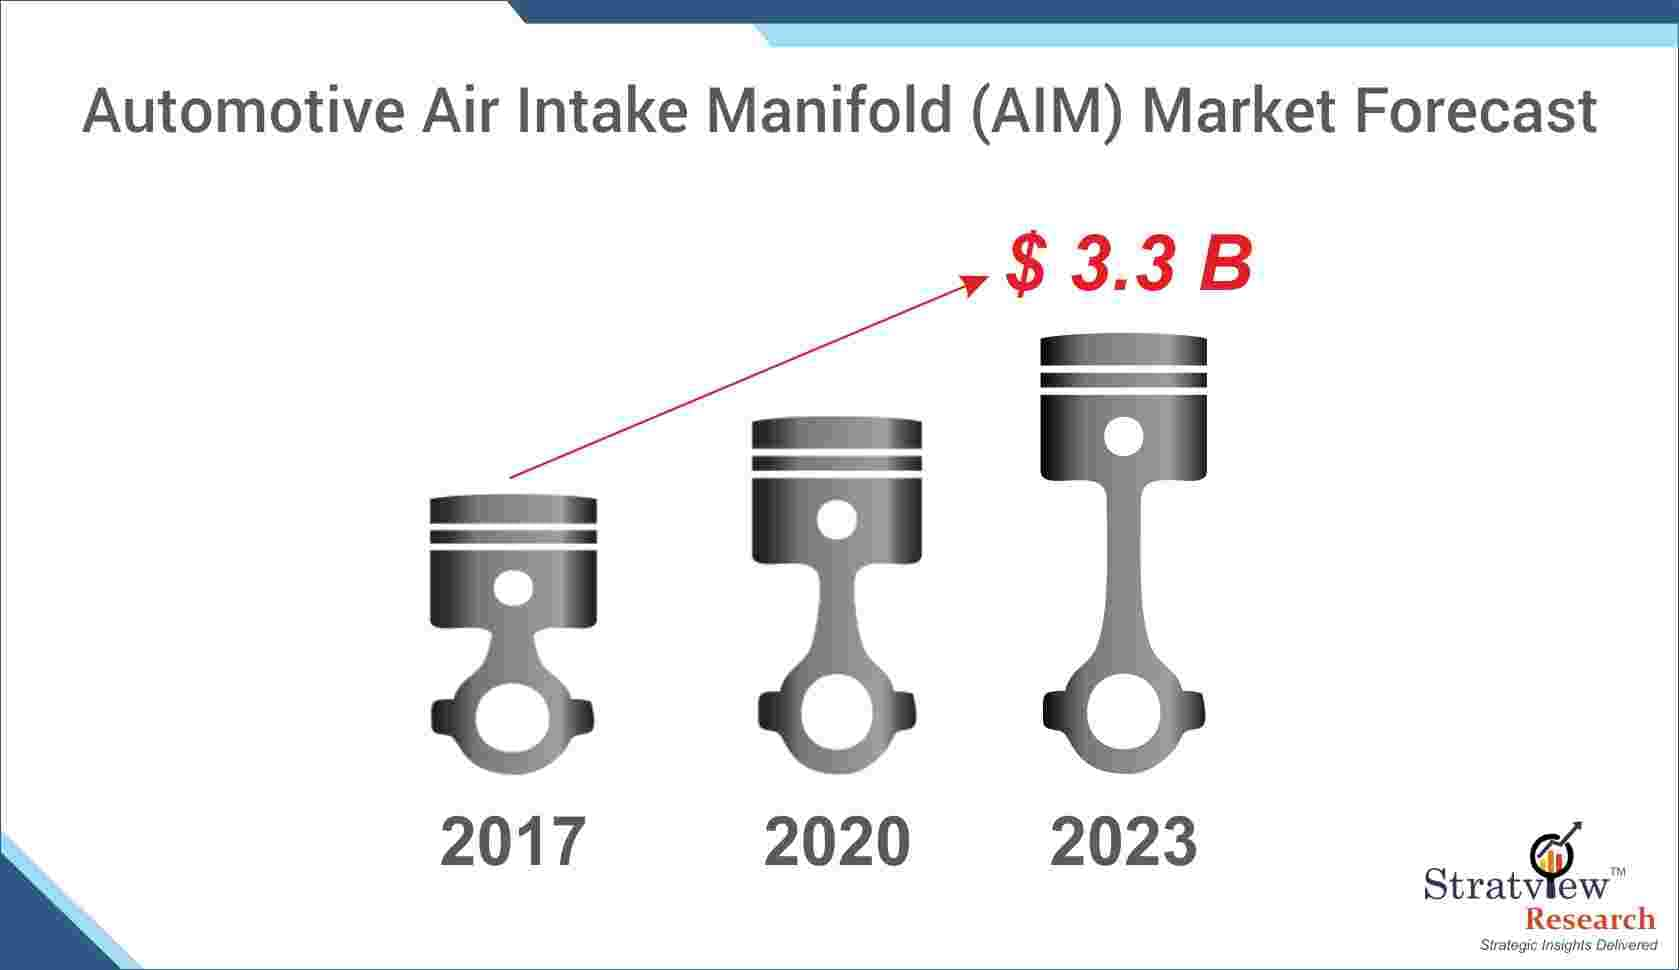 Automotive Air Intake Manifold Market Forecast